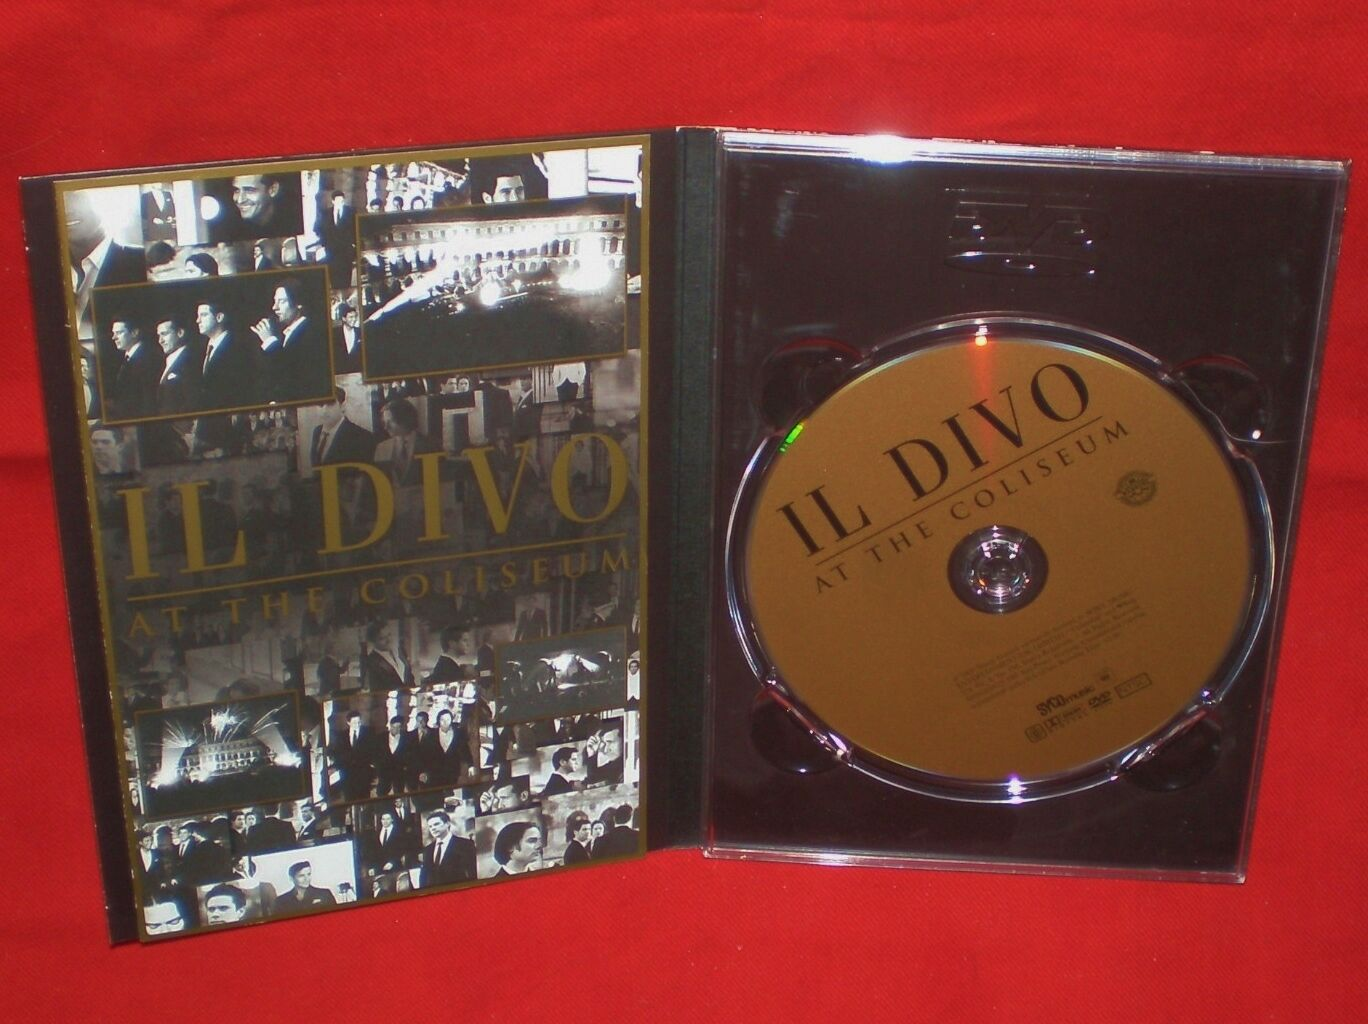 COLISEUM THE DVD BAIXAR AT IL DIVO